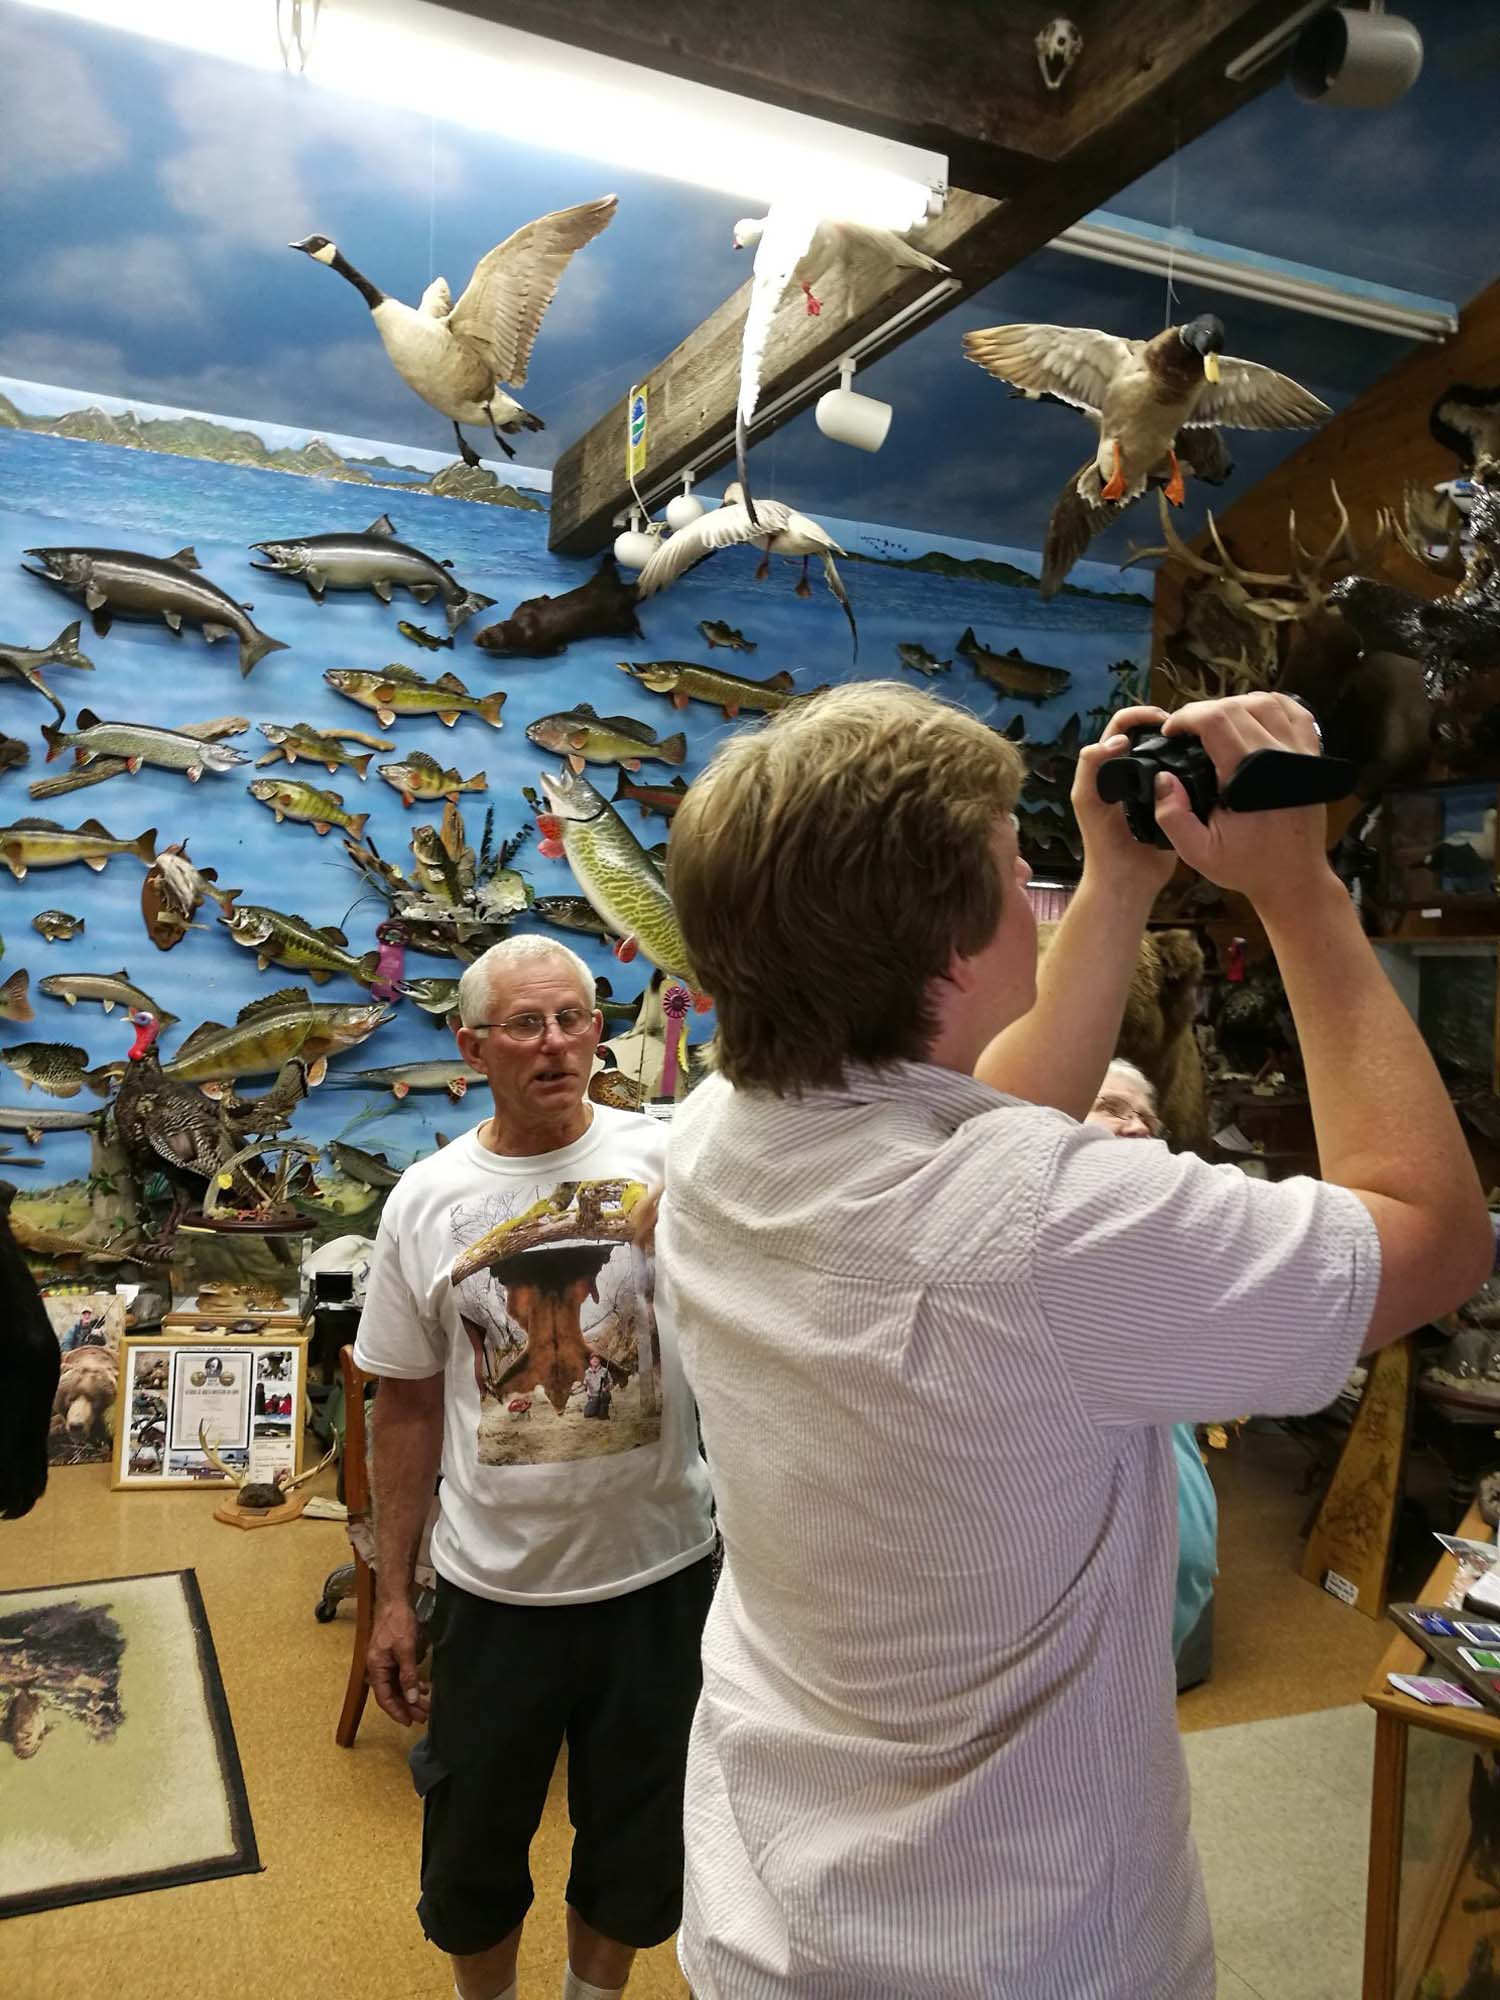 Joel Chapman uses a camcorder in a room with stuffed fish on the wall